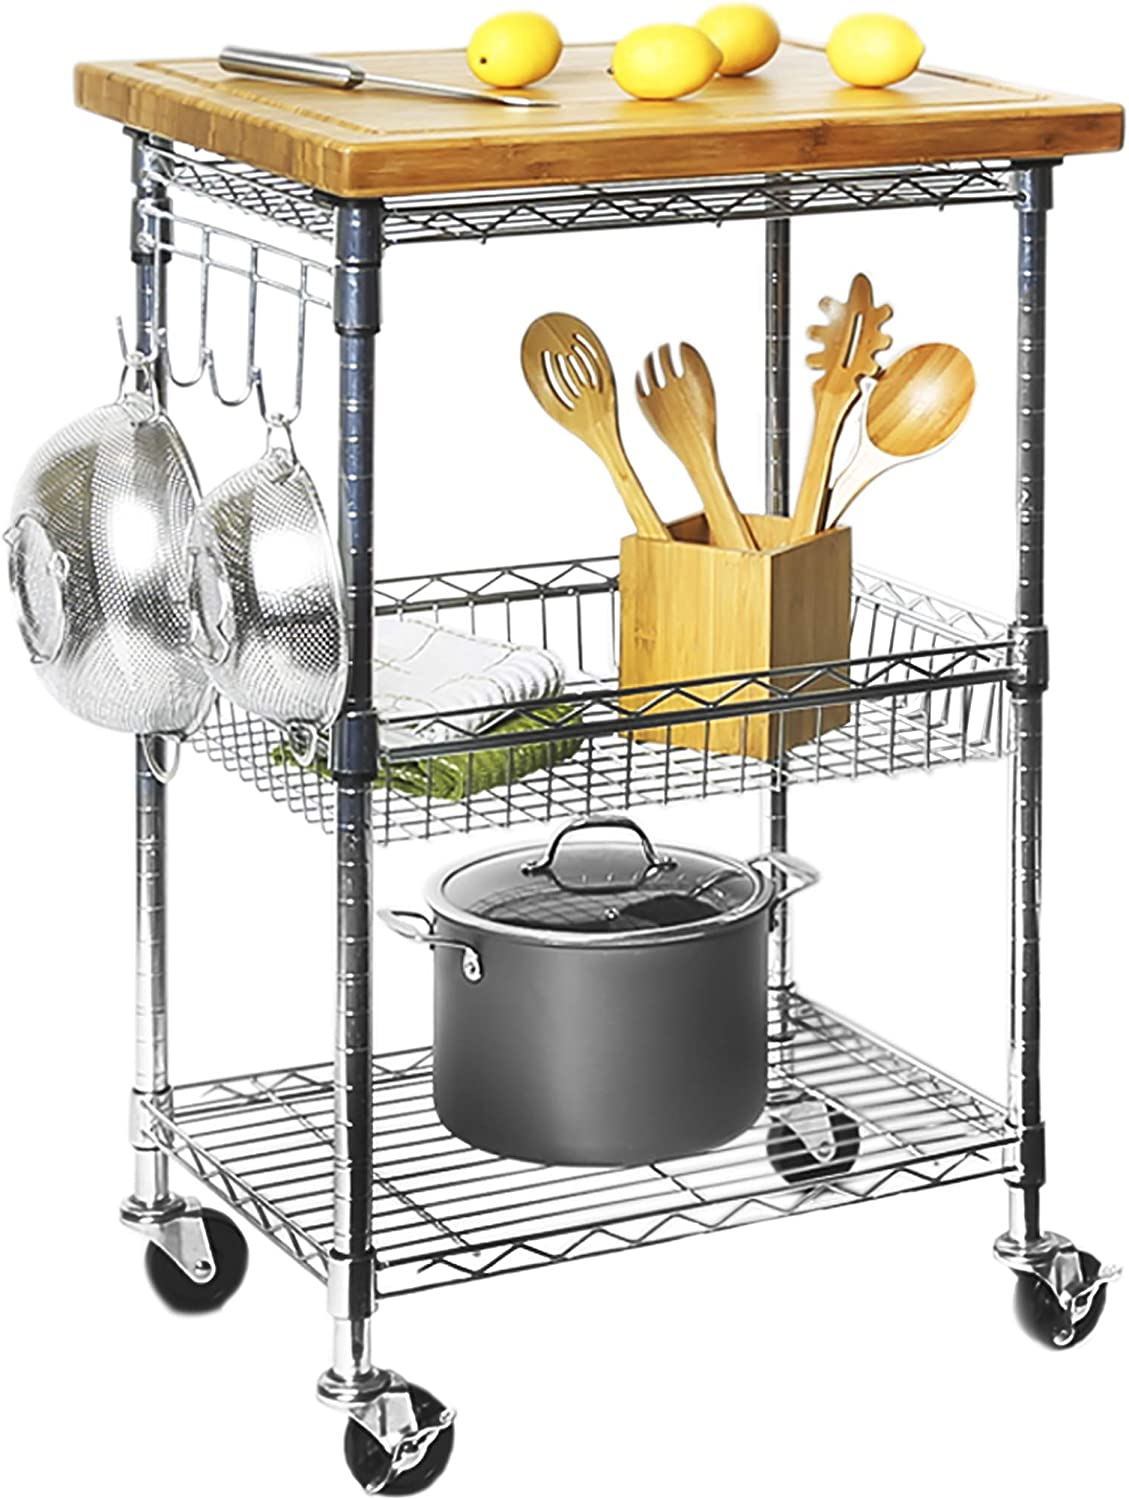 Seville Classics 3 Tier Solid Top Prep Table Kitchen Island Cart Storage 24 W X 20 D X 36 5 H Bamboo Chrome Home Kitchen